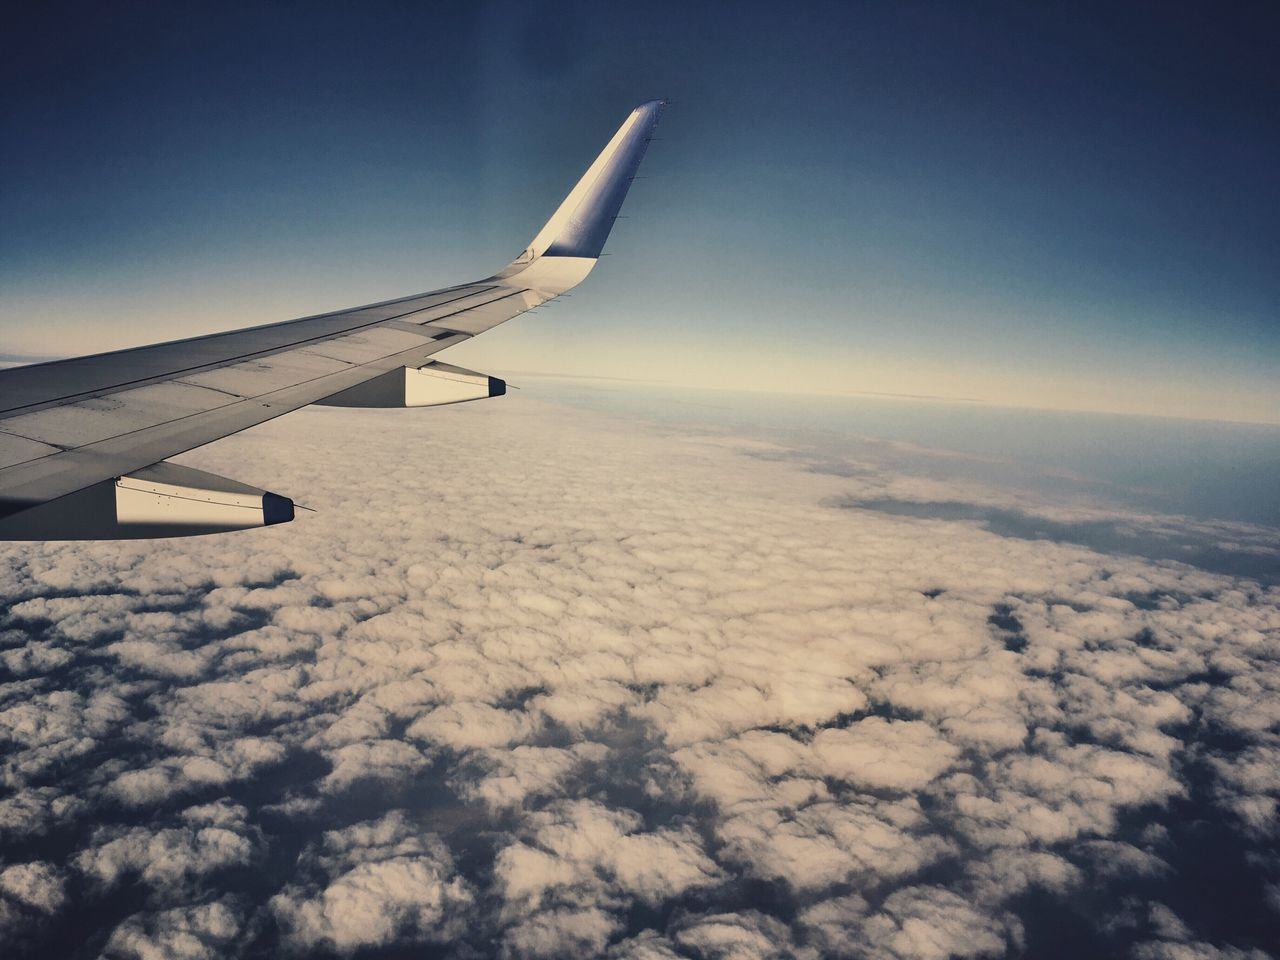 IPhone Airplane Airplane Wing Aerial View Cloud - Sky Travel Aircraft Wing Nature Flying Sky Travel Transportation Journey Cloudscape Beauty In Nature Tranquility Tranquil Scene No People Air Vehicle Scenics Landscape Outdoors